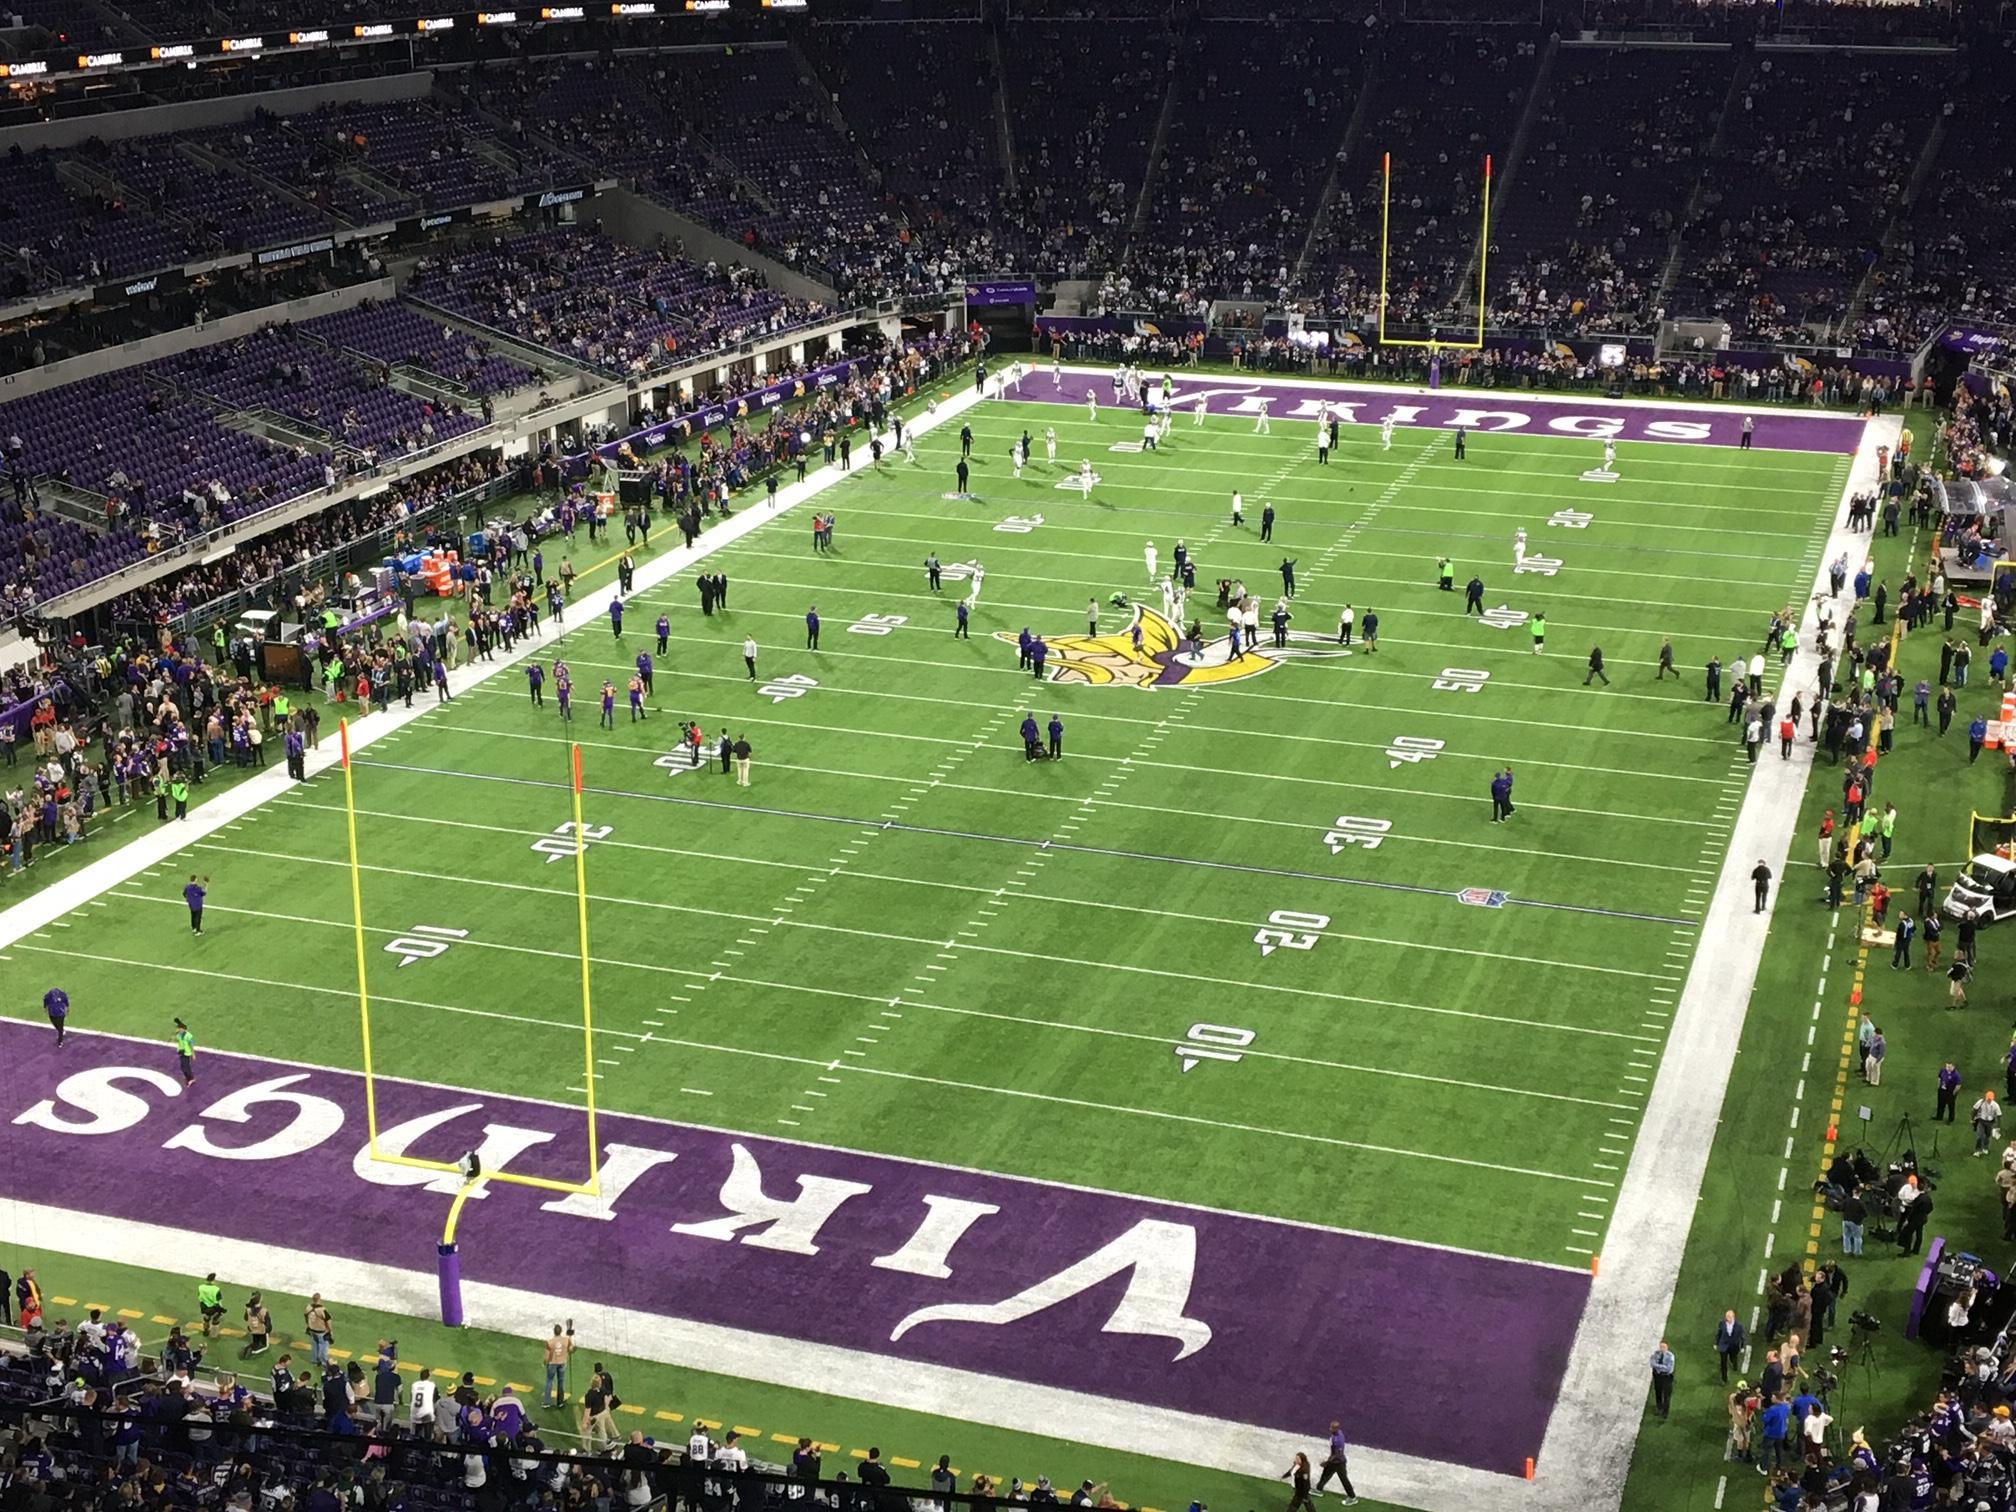 U.S. Bank Stadium Section 324 Row C Seat 3